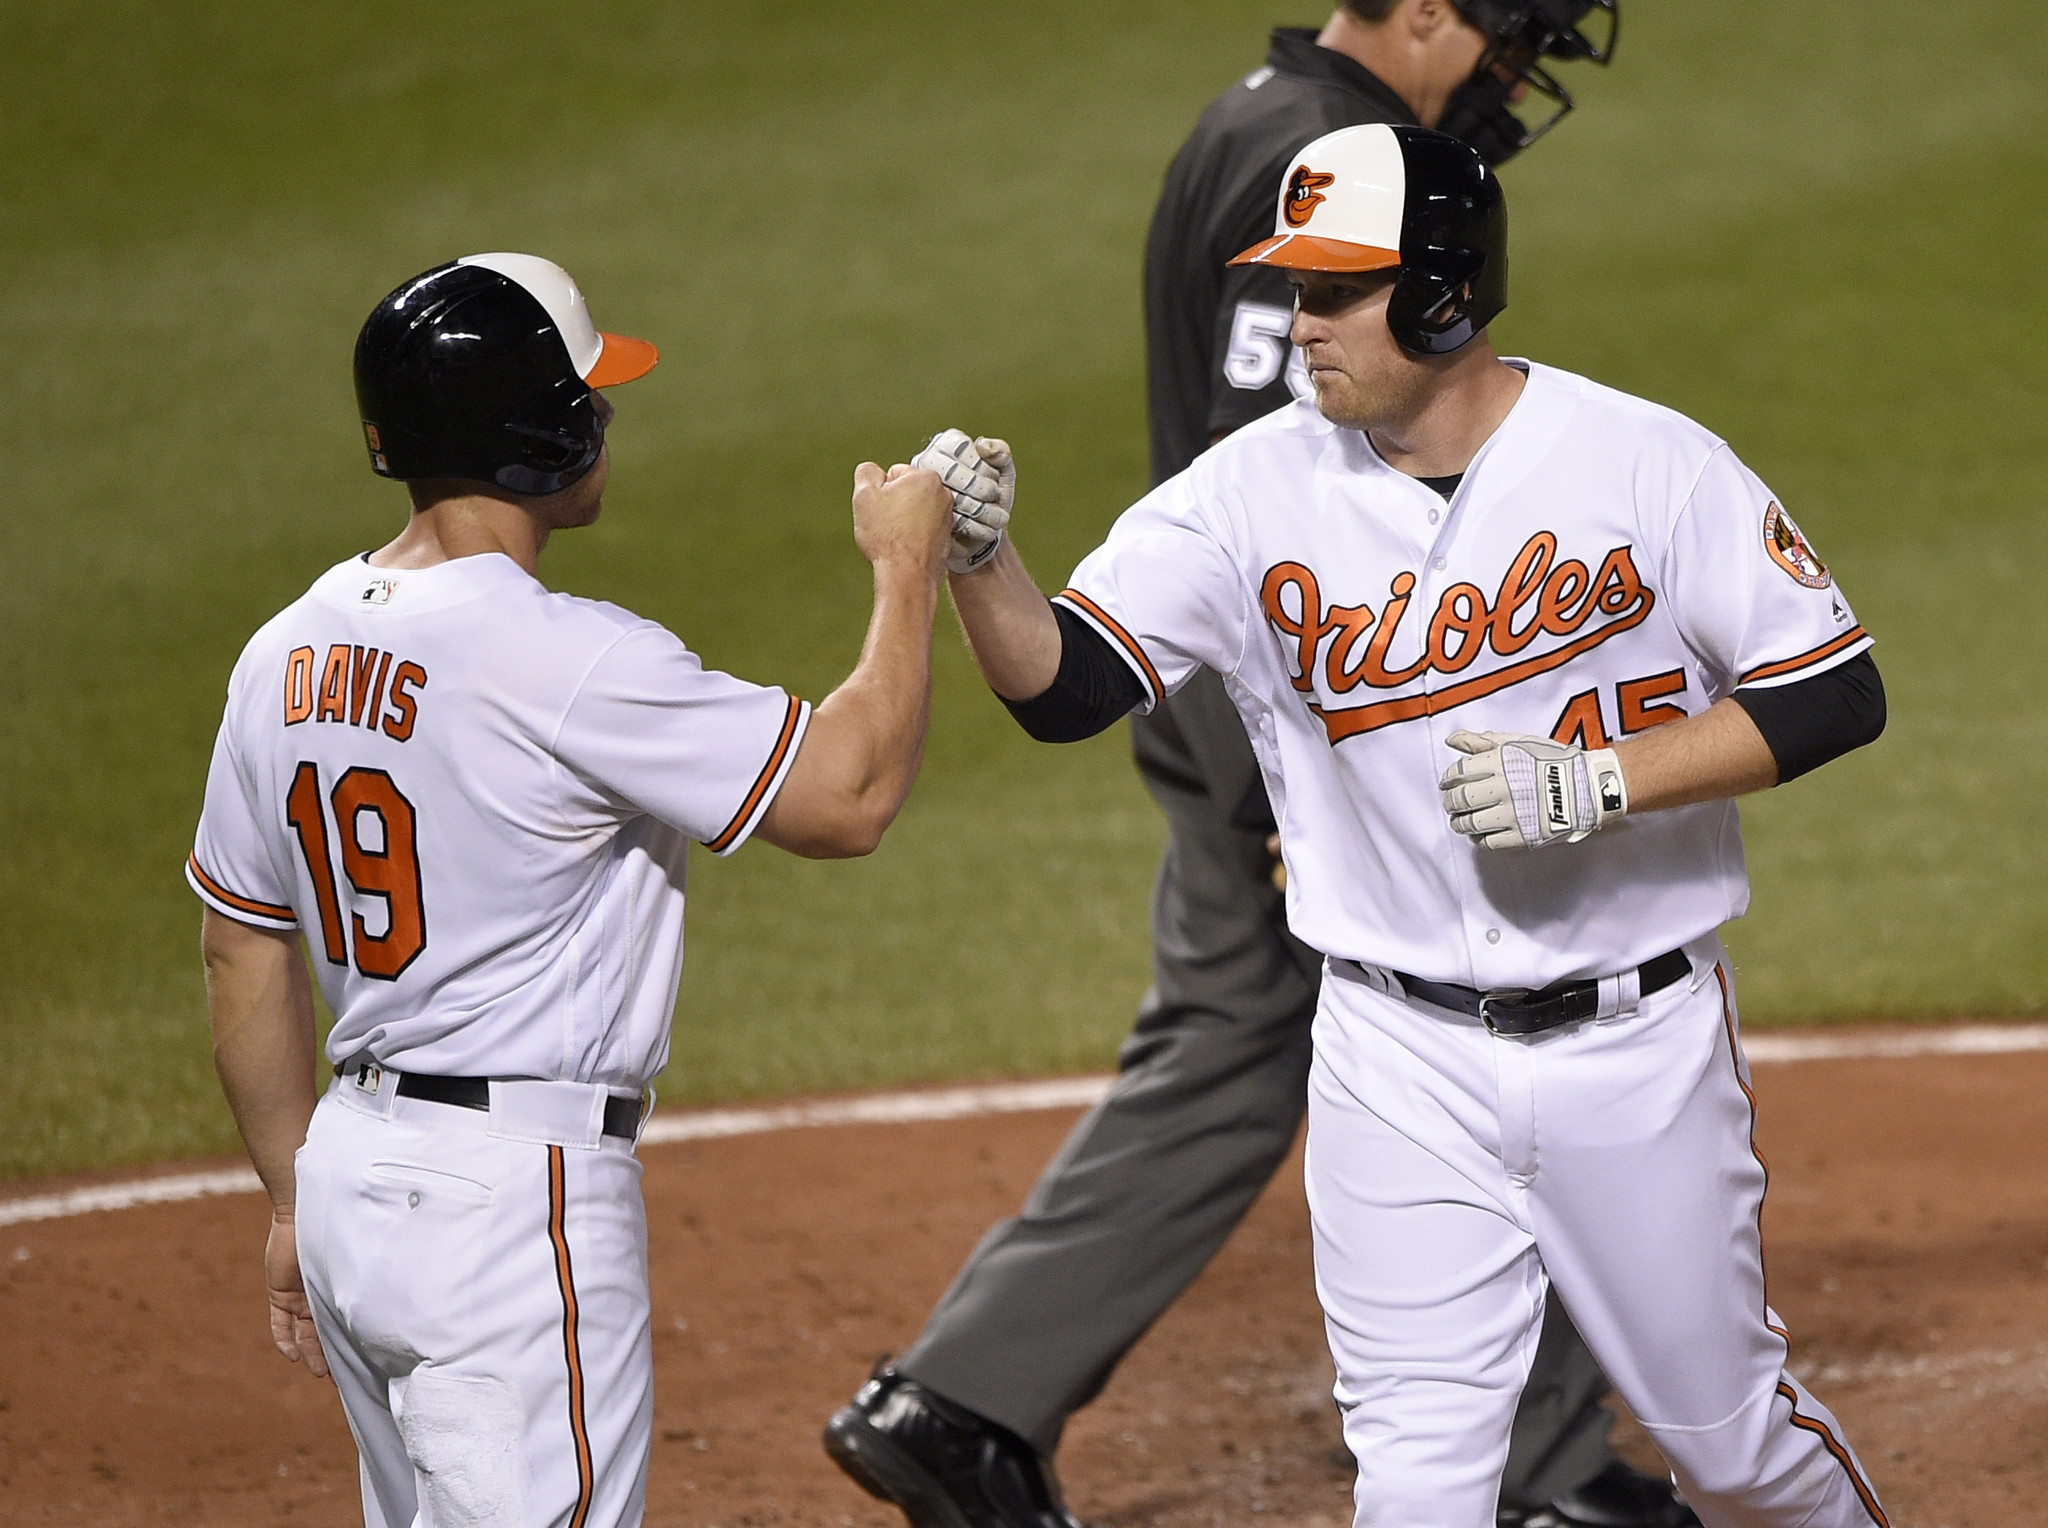 Bal-orioles-on-deck-what-to-watch-tuesday-vs-nationals-20160823